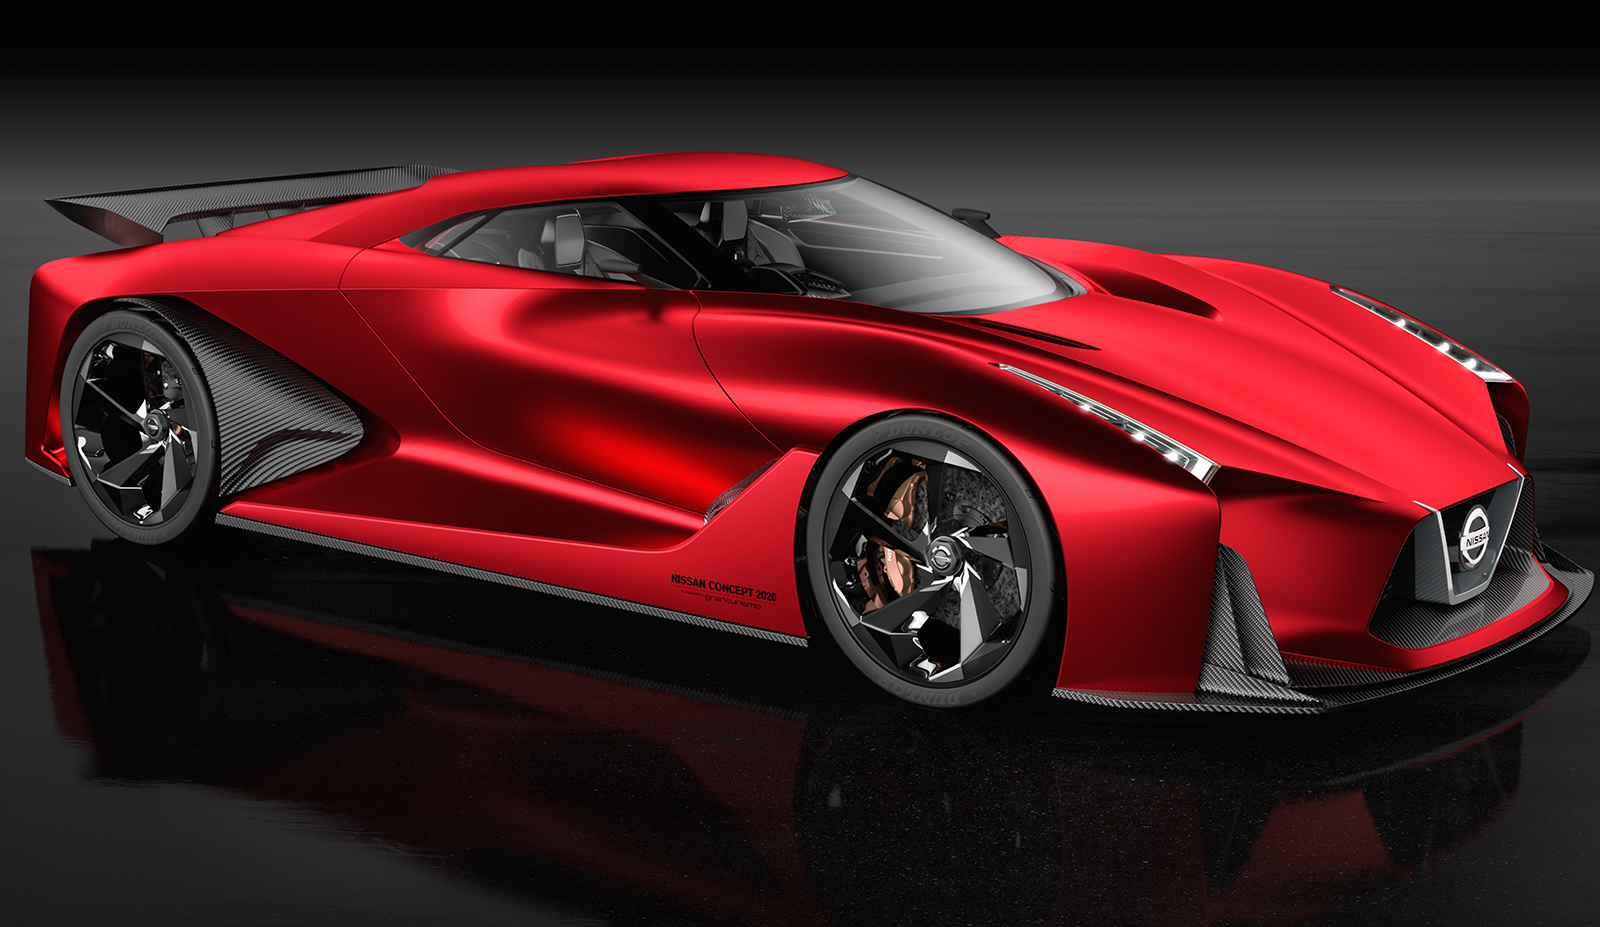 Nissan Concept 2020 Vision Gran Turismo Hot In Red Image